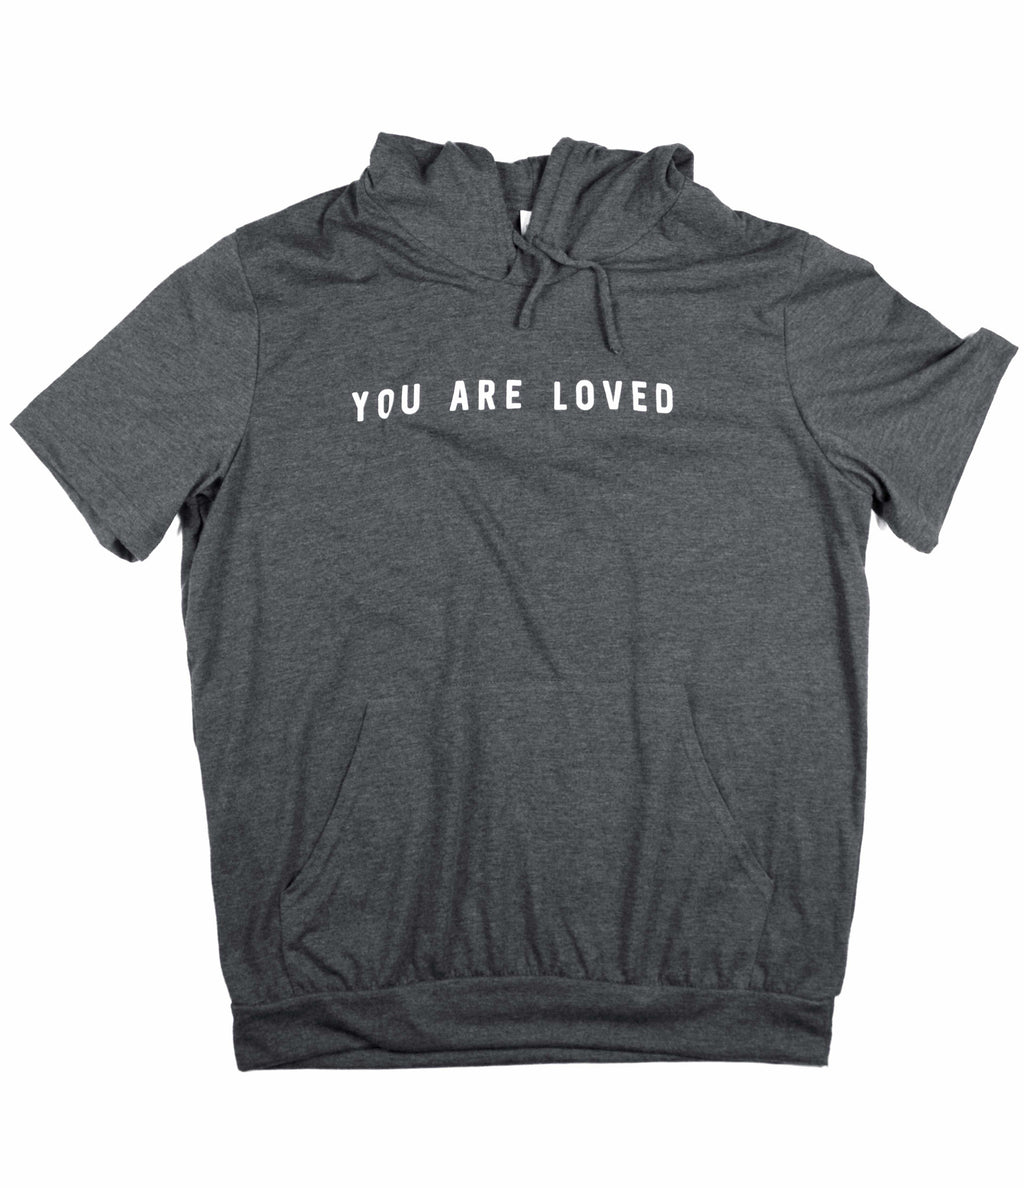 YOU ARE LOVED DARK GREY JERSEY SHORT SLEEVE HOODIE